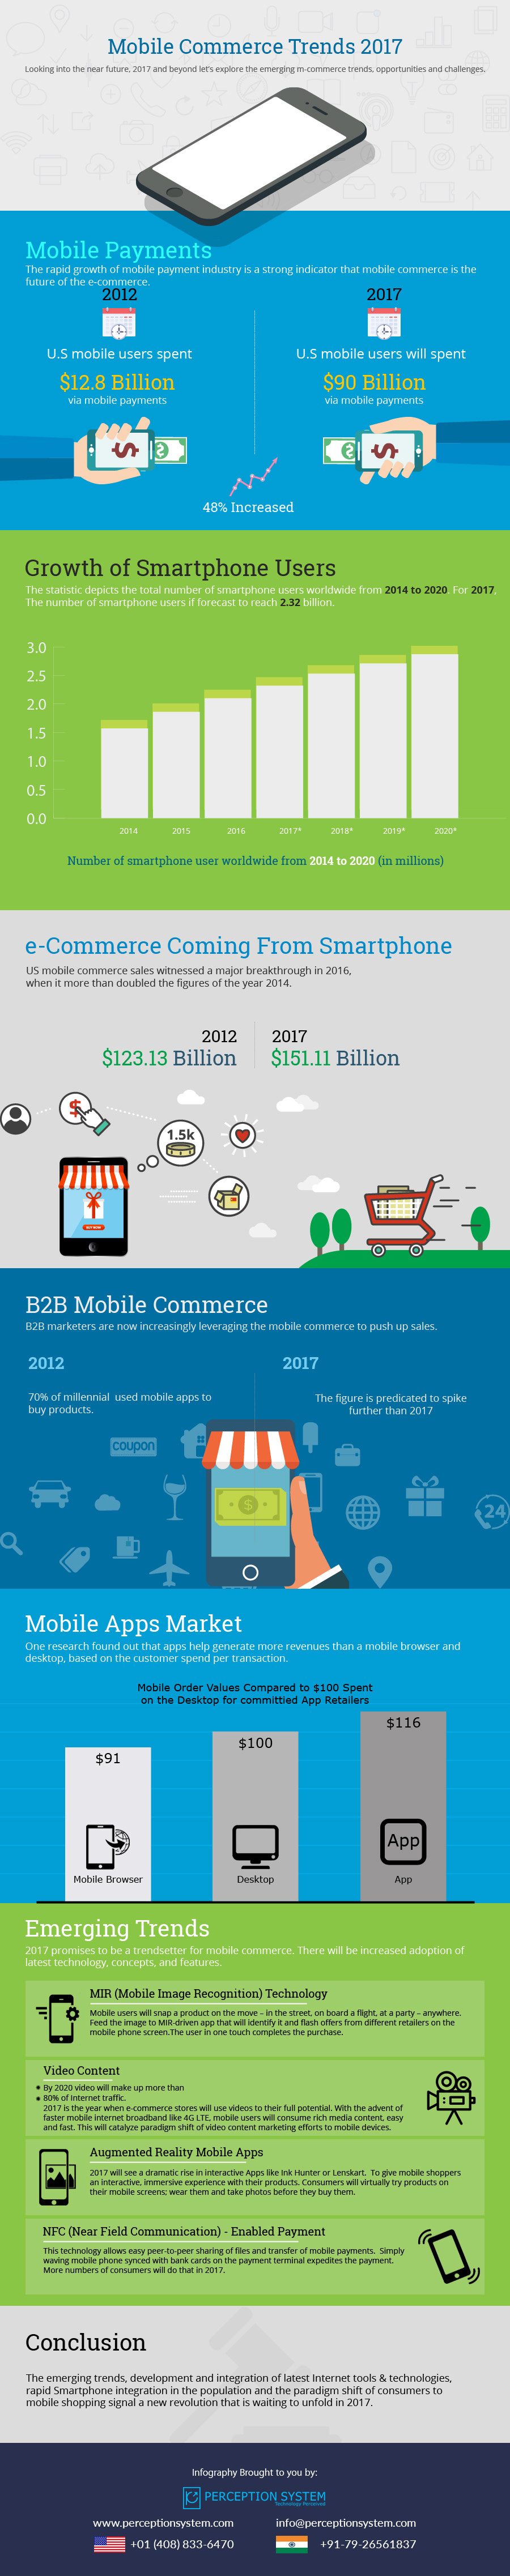 Infographic: Astounding Mobile Commerce Trends of 2017 - Image 1